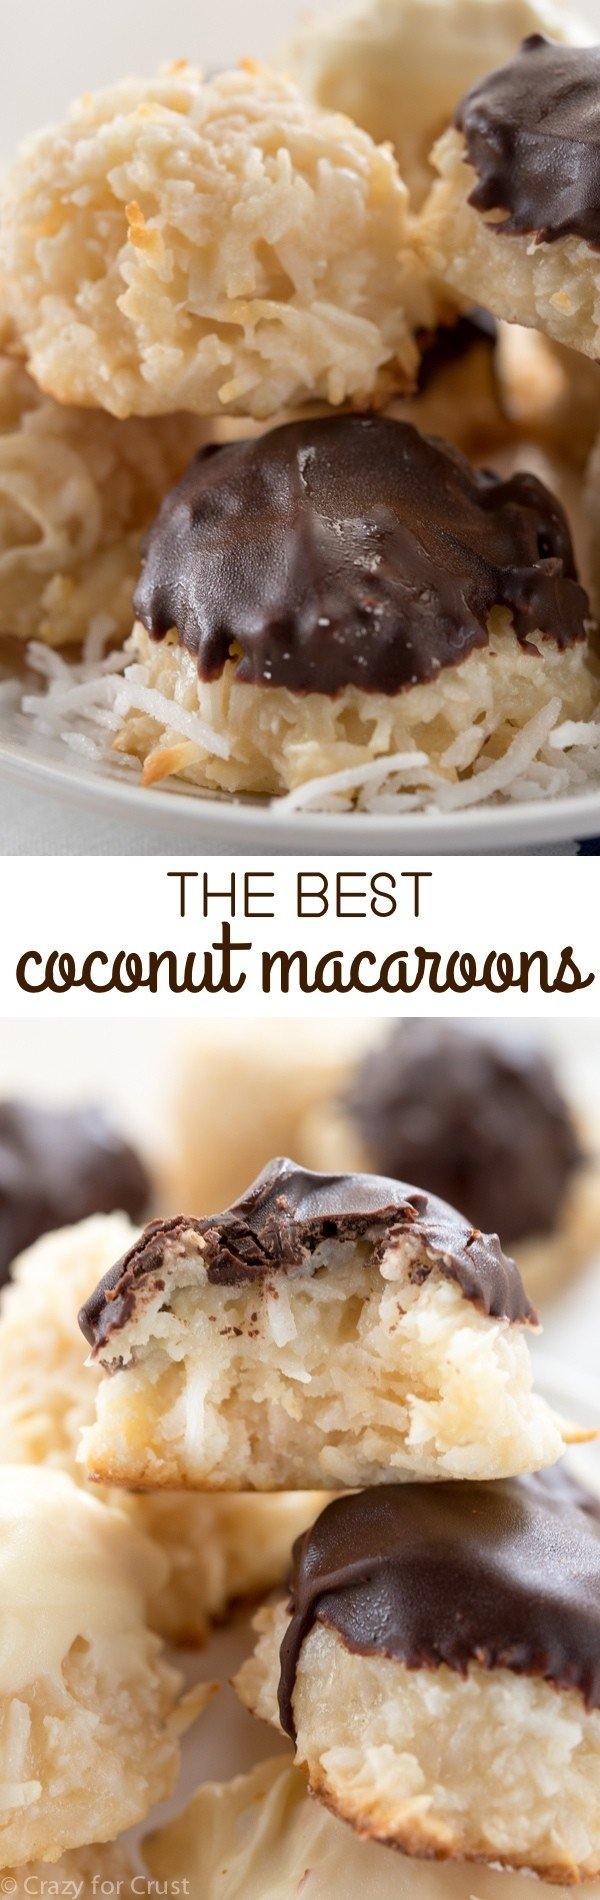 Bakery Style Coconut Macaroons - Crazy for Crust